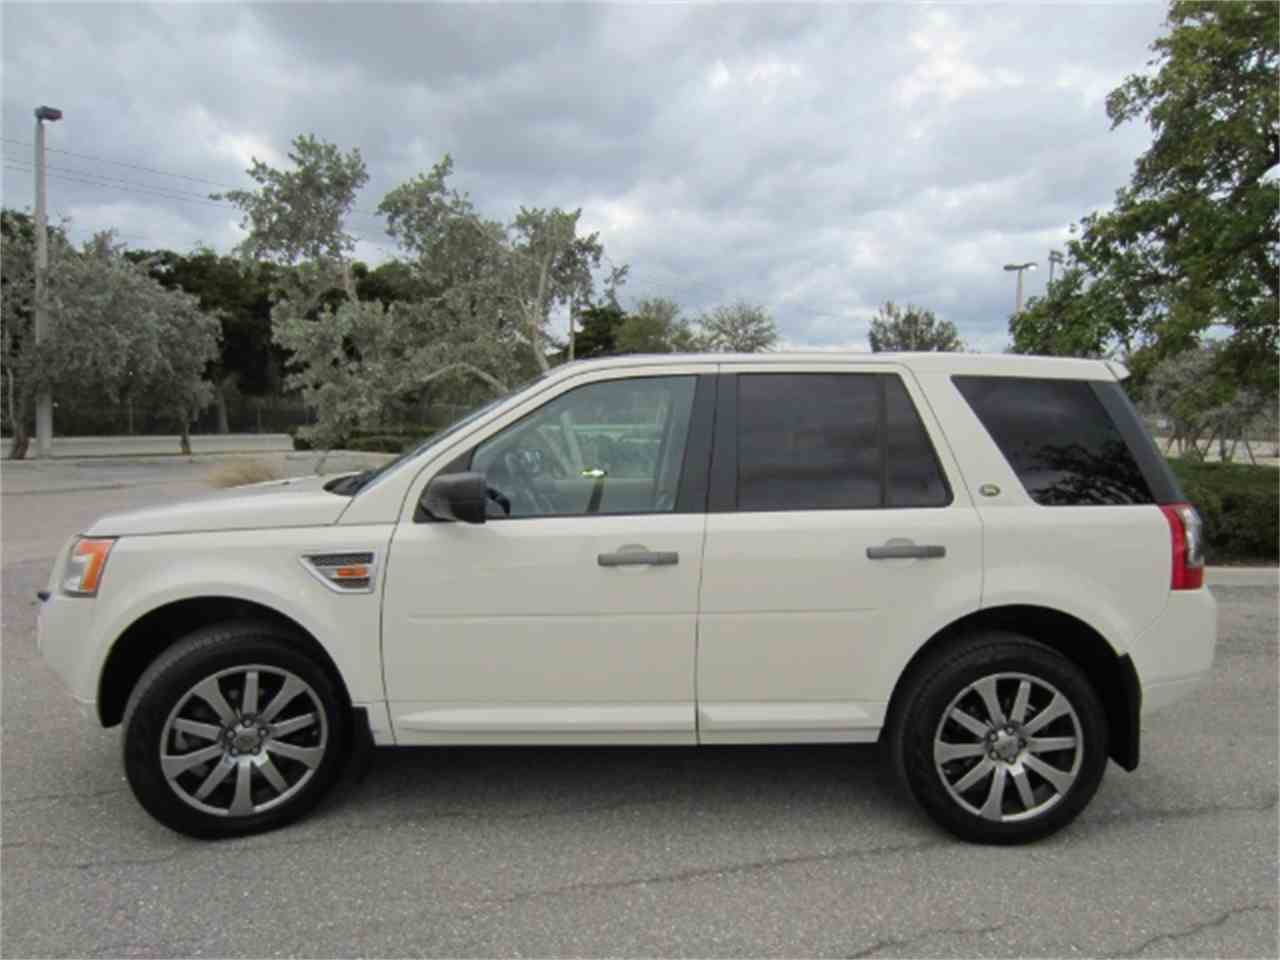 landrover conseil se en land ca a inc for auto limite sd sale today quote dition limit request inventory used edition rover